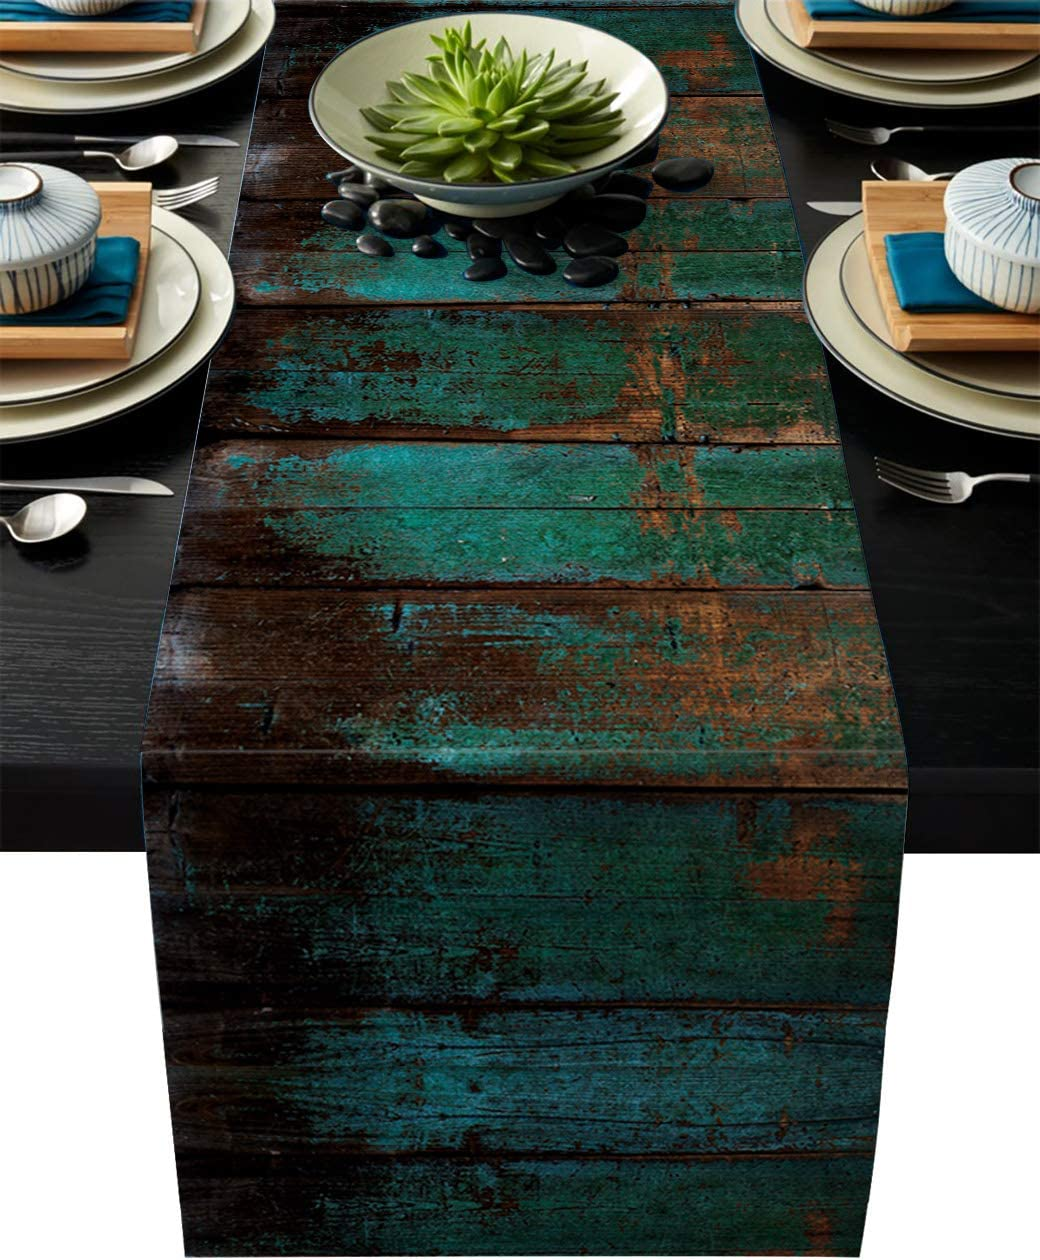 Vandarllin Cotton Linen Table Runner Dresser Scarves Country Rustic Distressed Barn Wood Non-Slip Burlap Rectangle Table Setting Decor for Wedding Party Holiday Dinner Home, 18x72 inch Teal Green